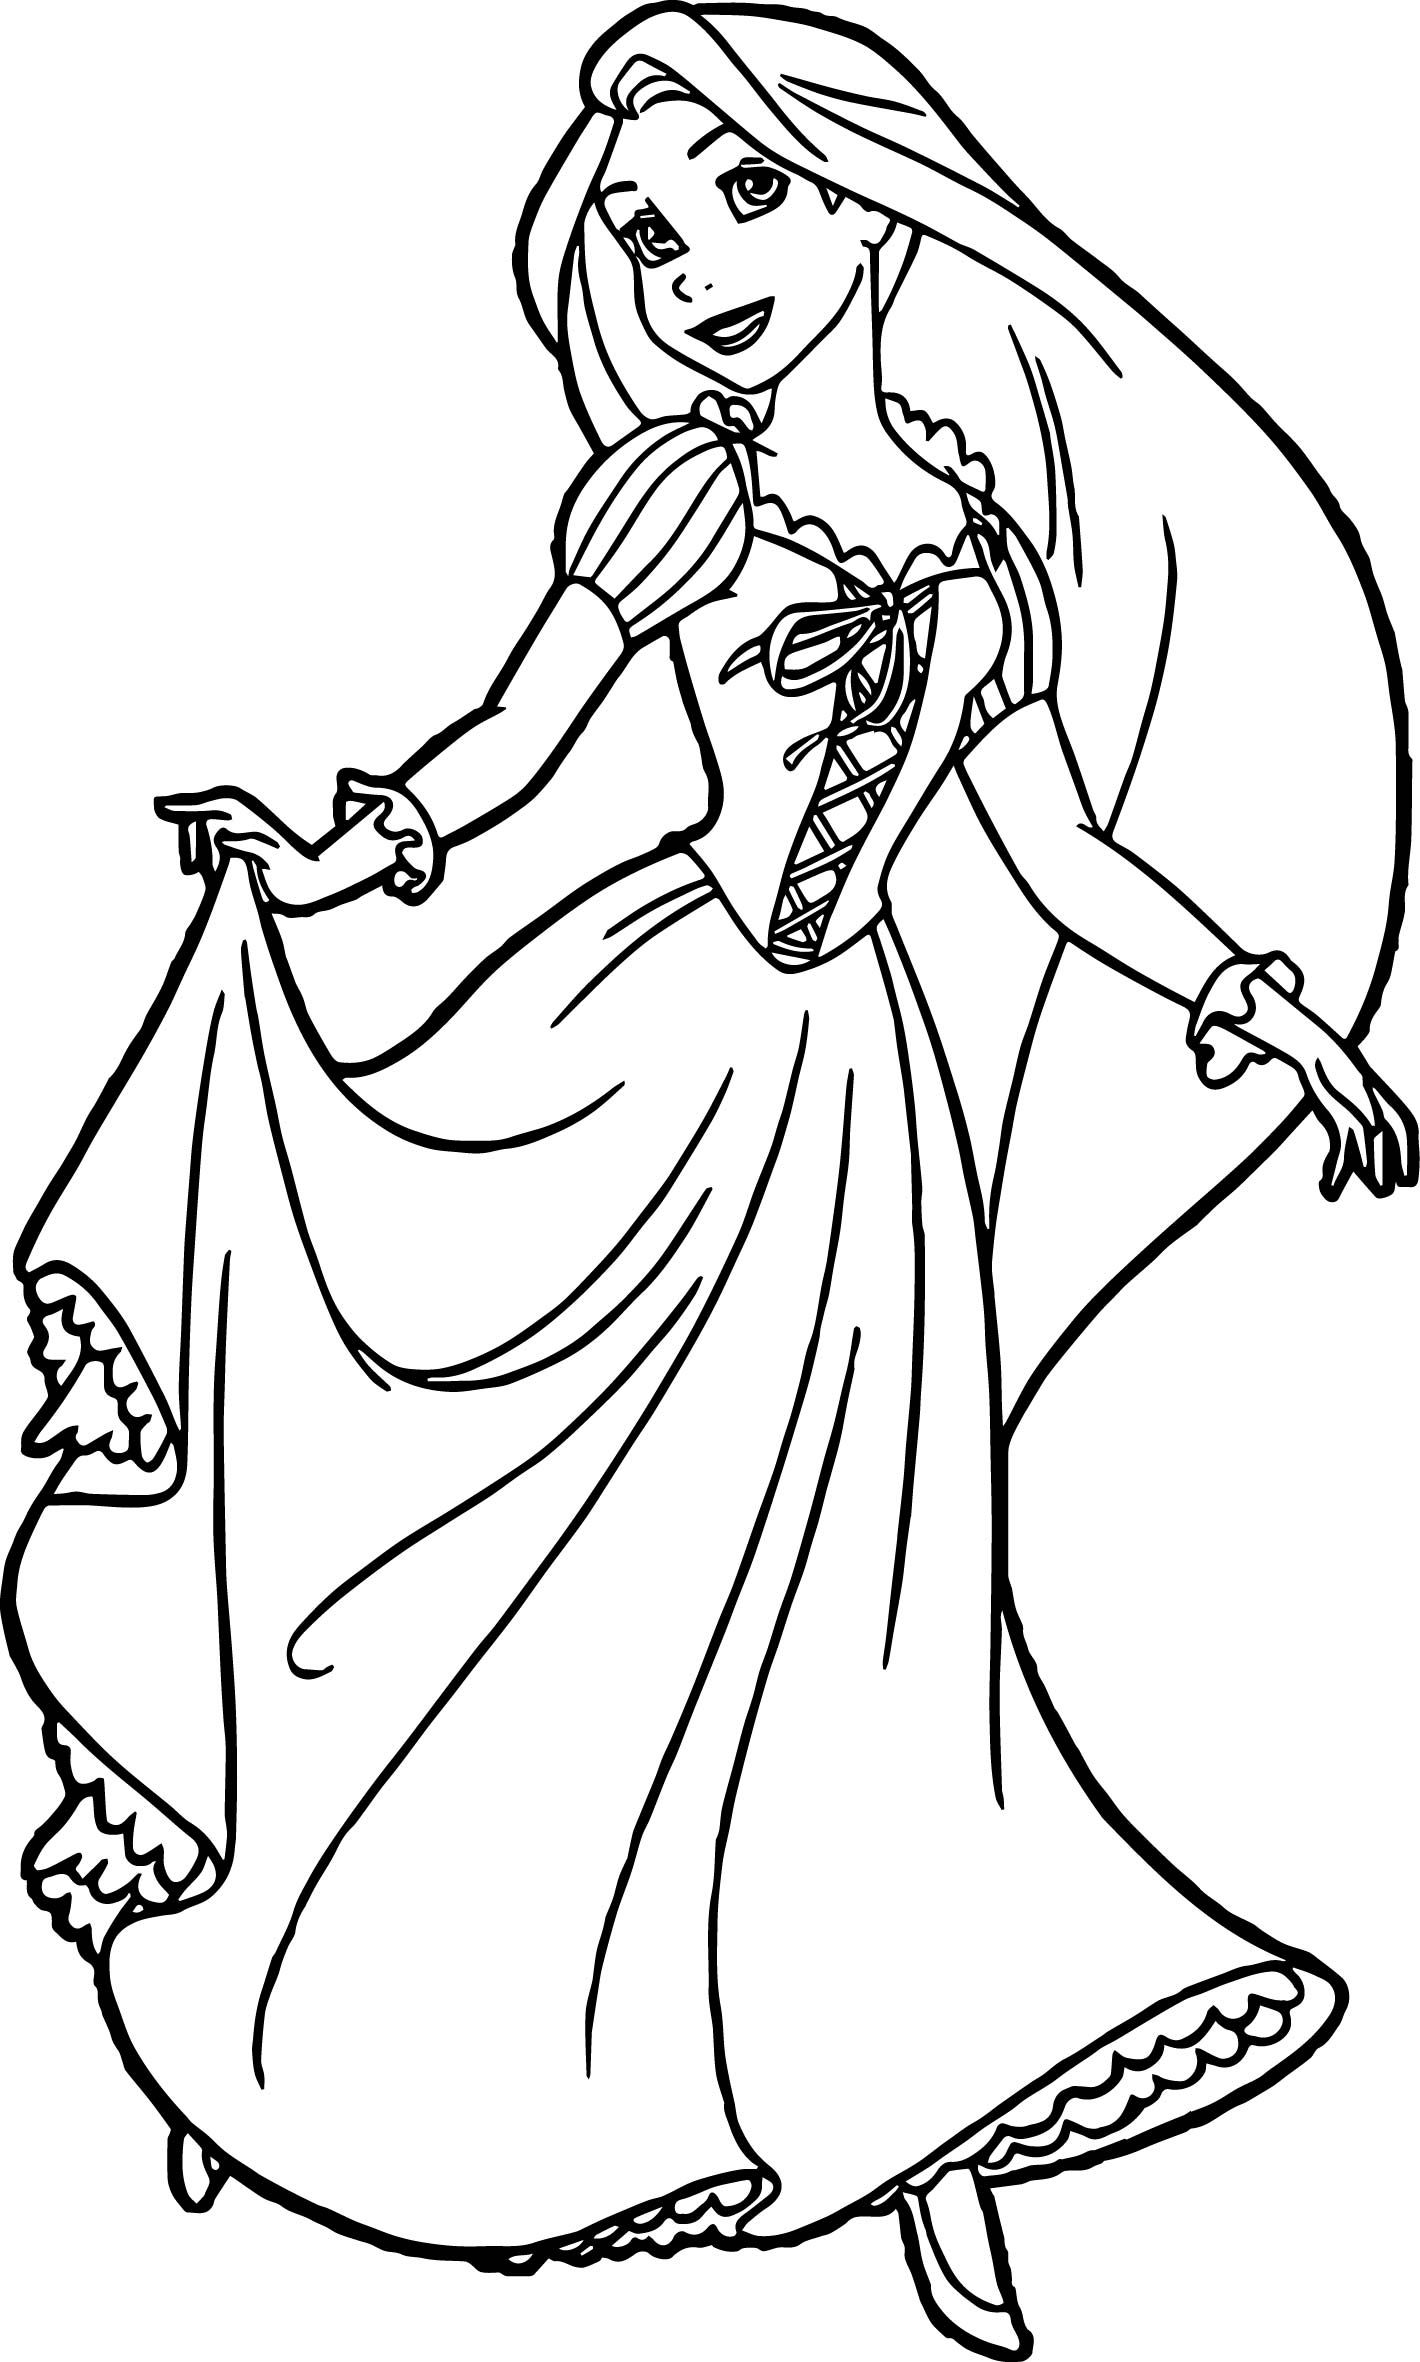 free rapunzel coloring pages rapunzel coloring pages for kids visual arts ideas pages rapunzel coloring free